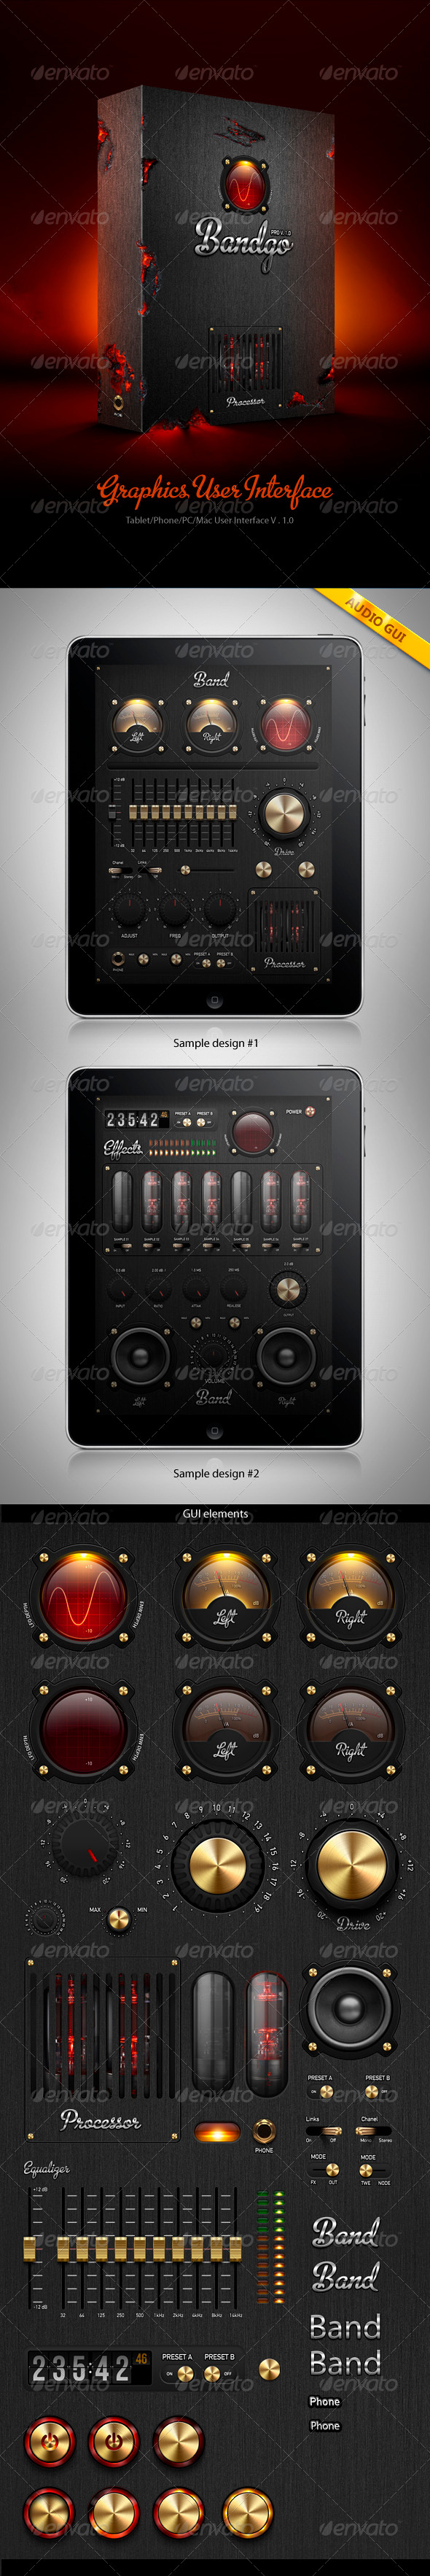 GraphicRiver Tablet Phone PC Mac User Interface Elements 522219